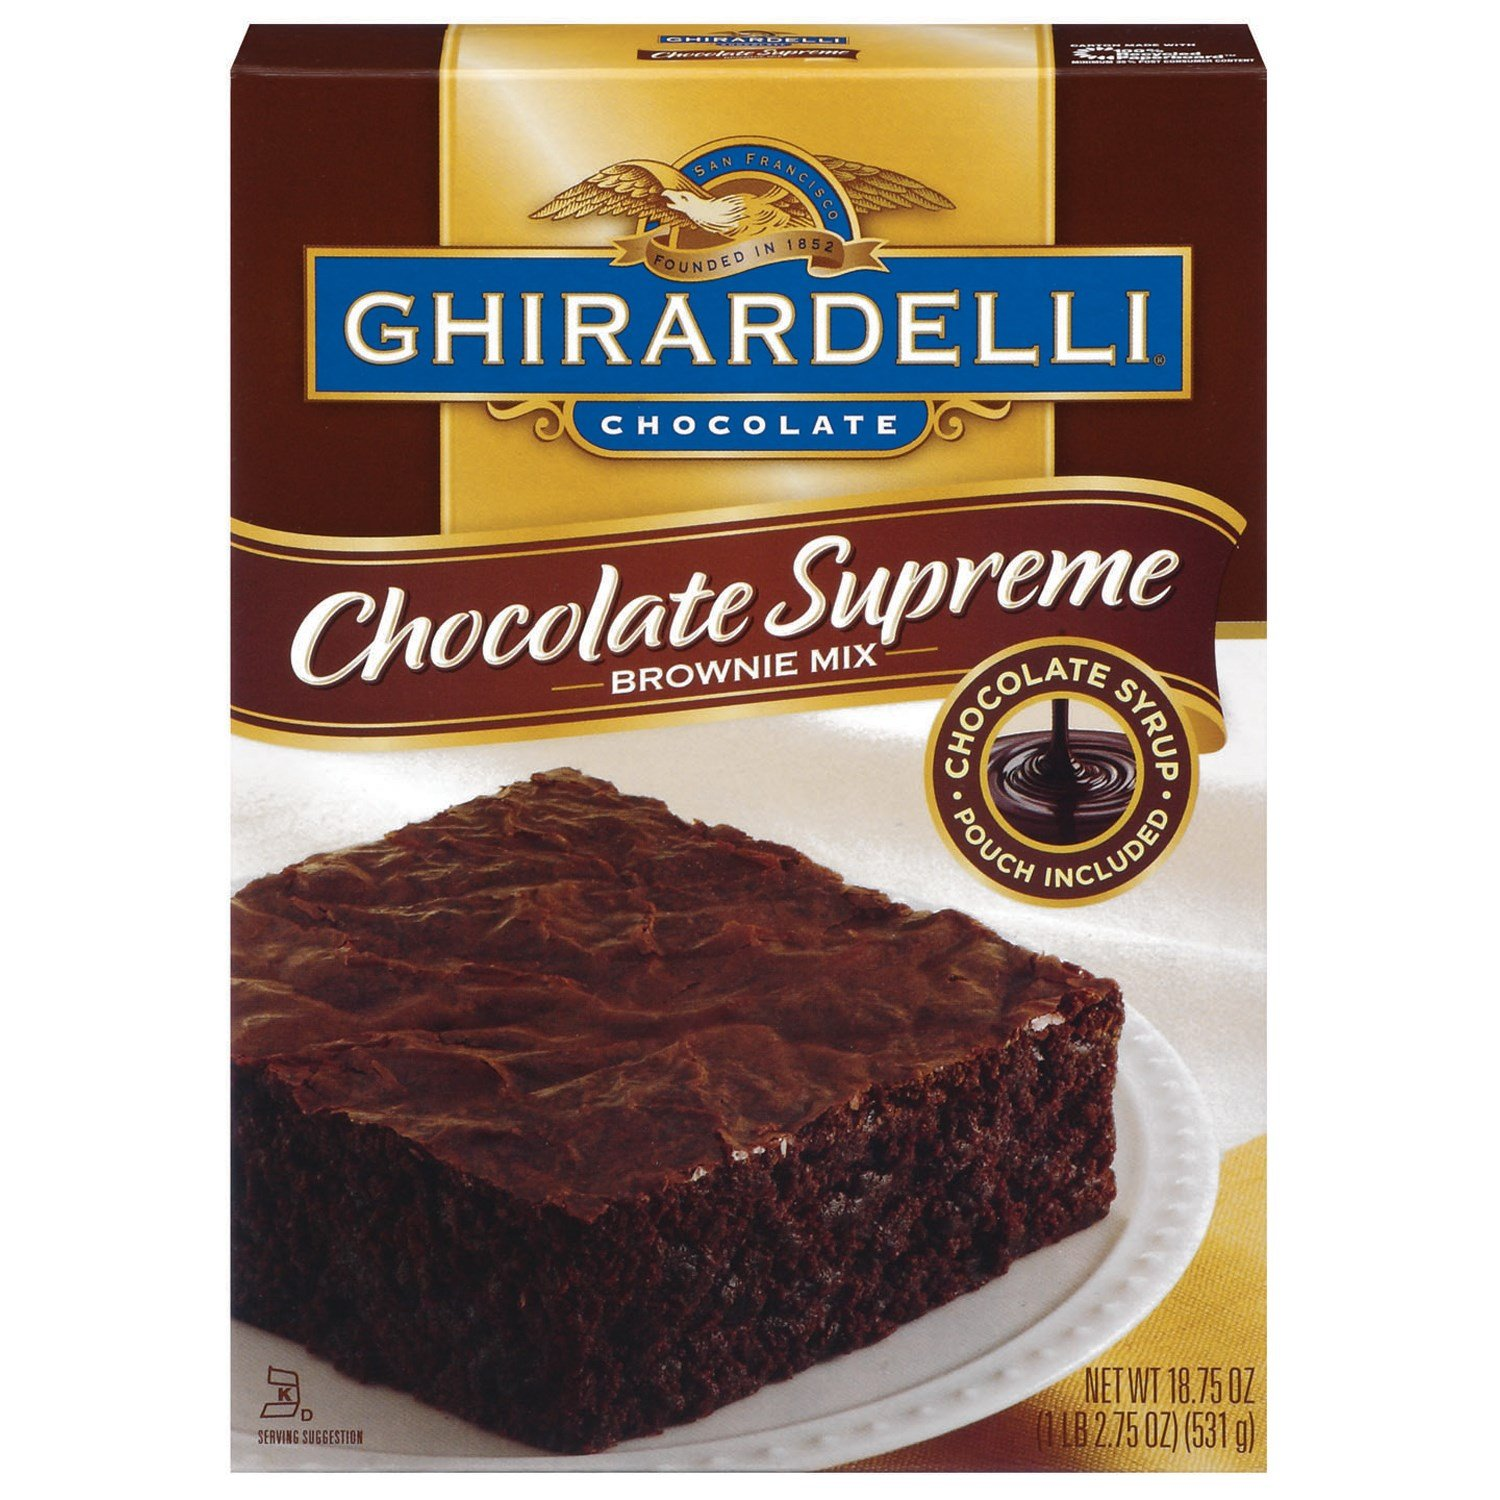 Ghirardelli Brownie Mix Syrup 18.75 OZ (Pack of 24) by Ghirardelli (Image #1)